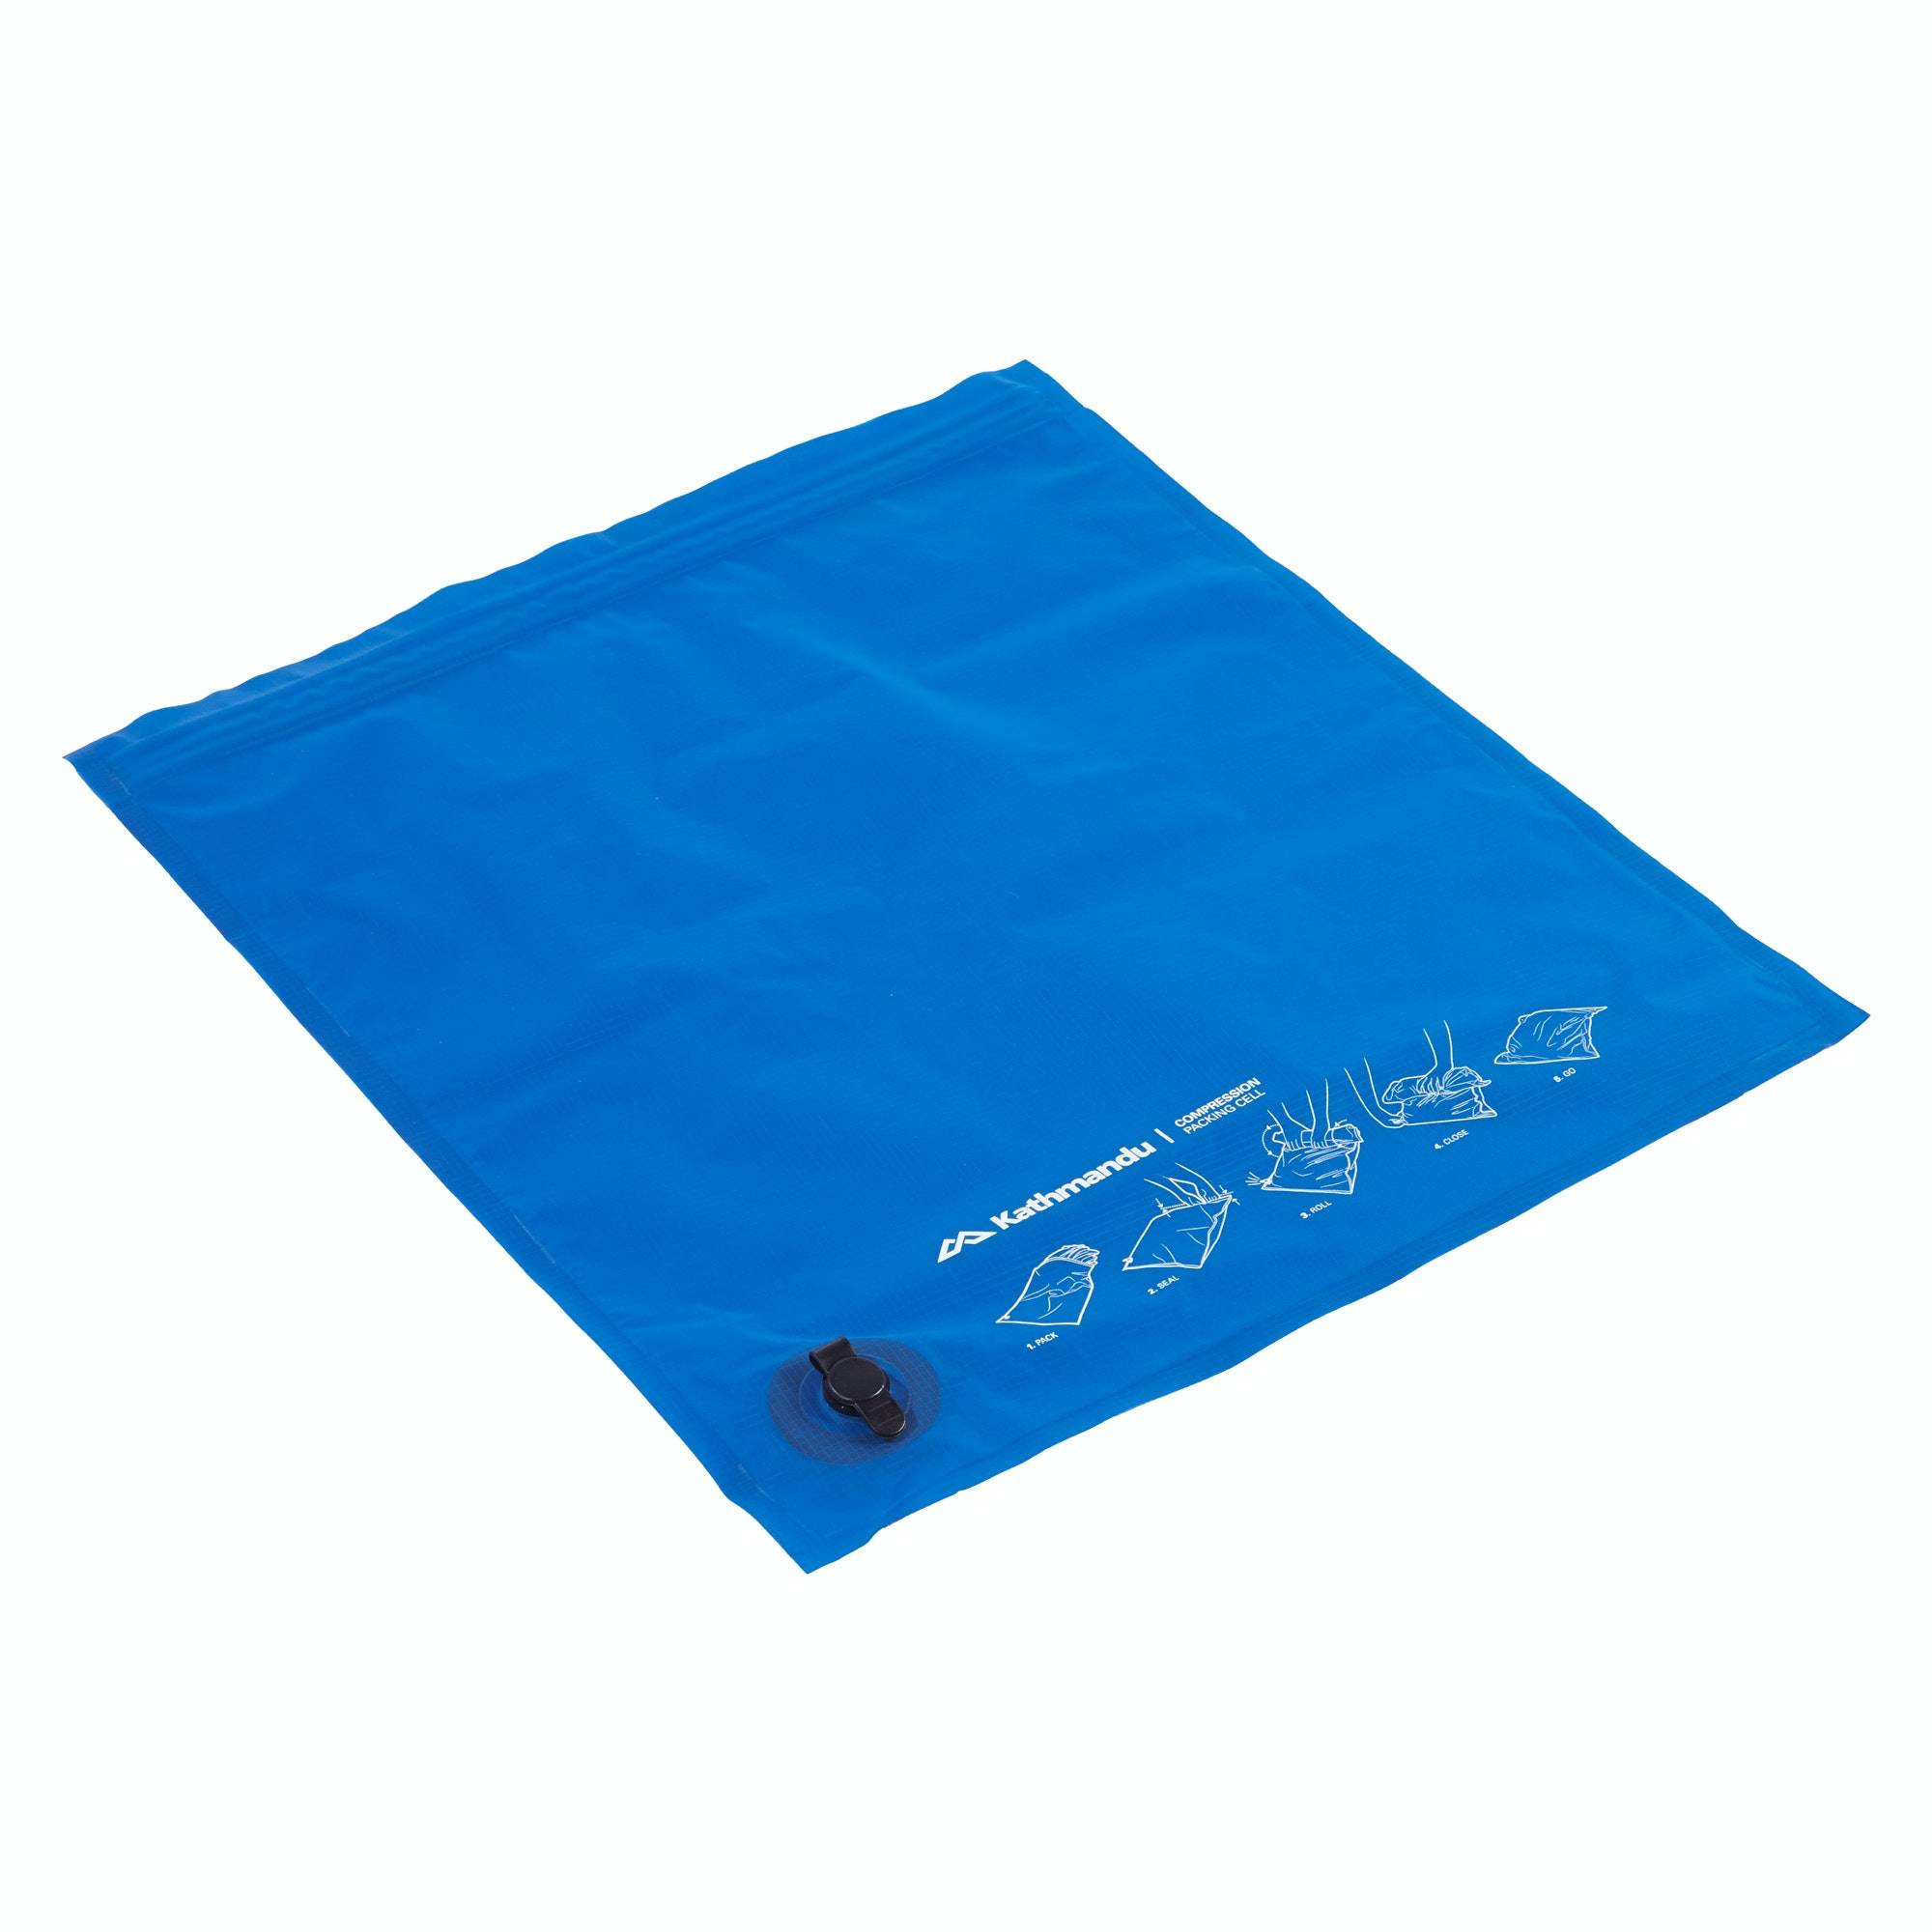 Kathmandu Packing Cell Compression  - Azure - Size: ONE